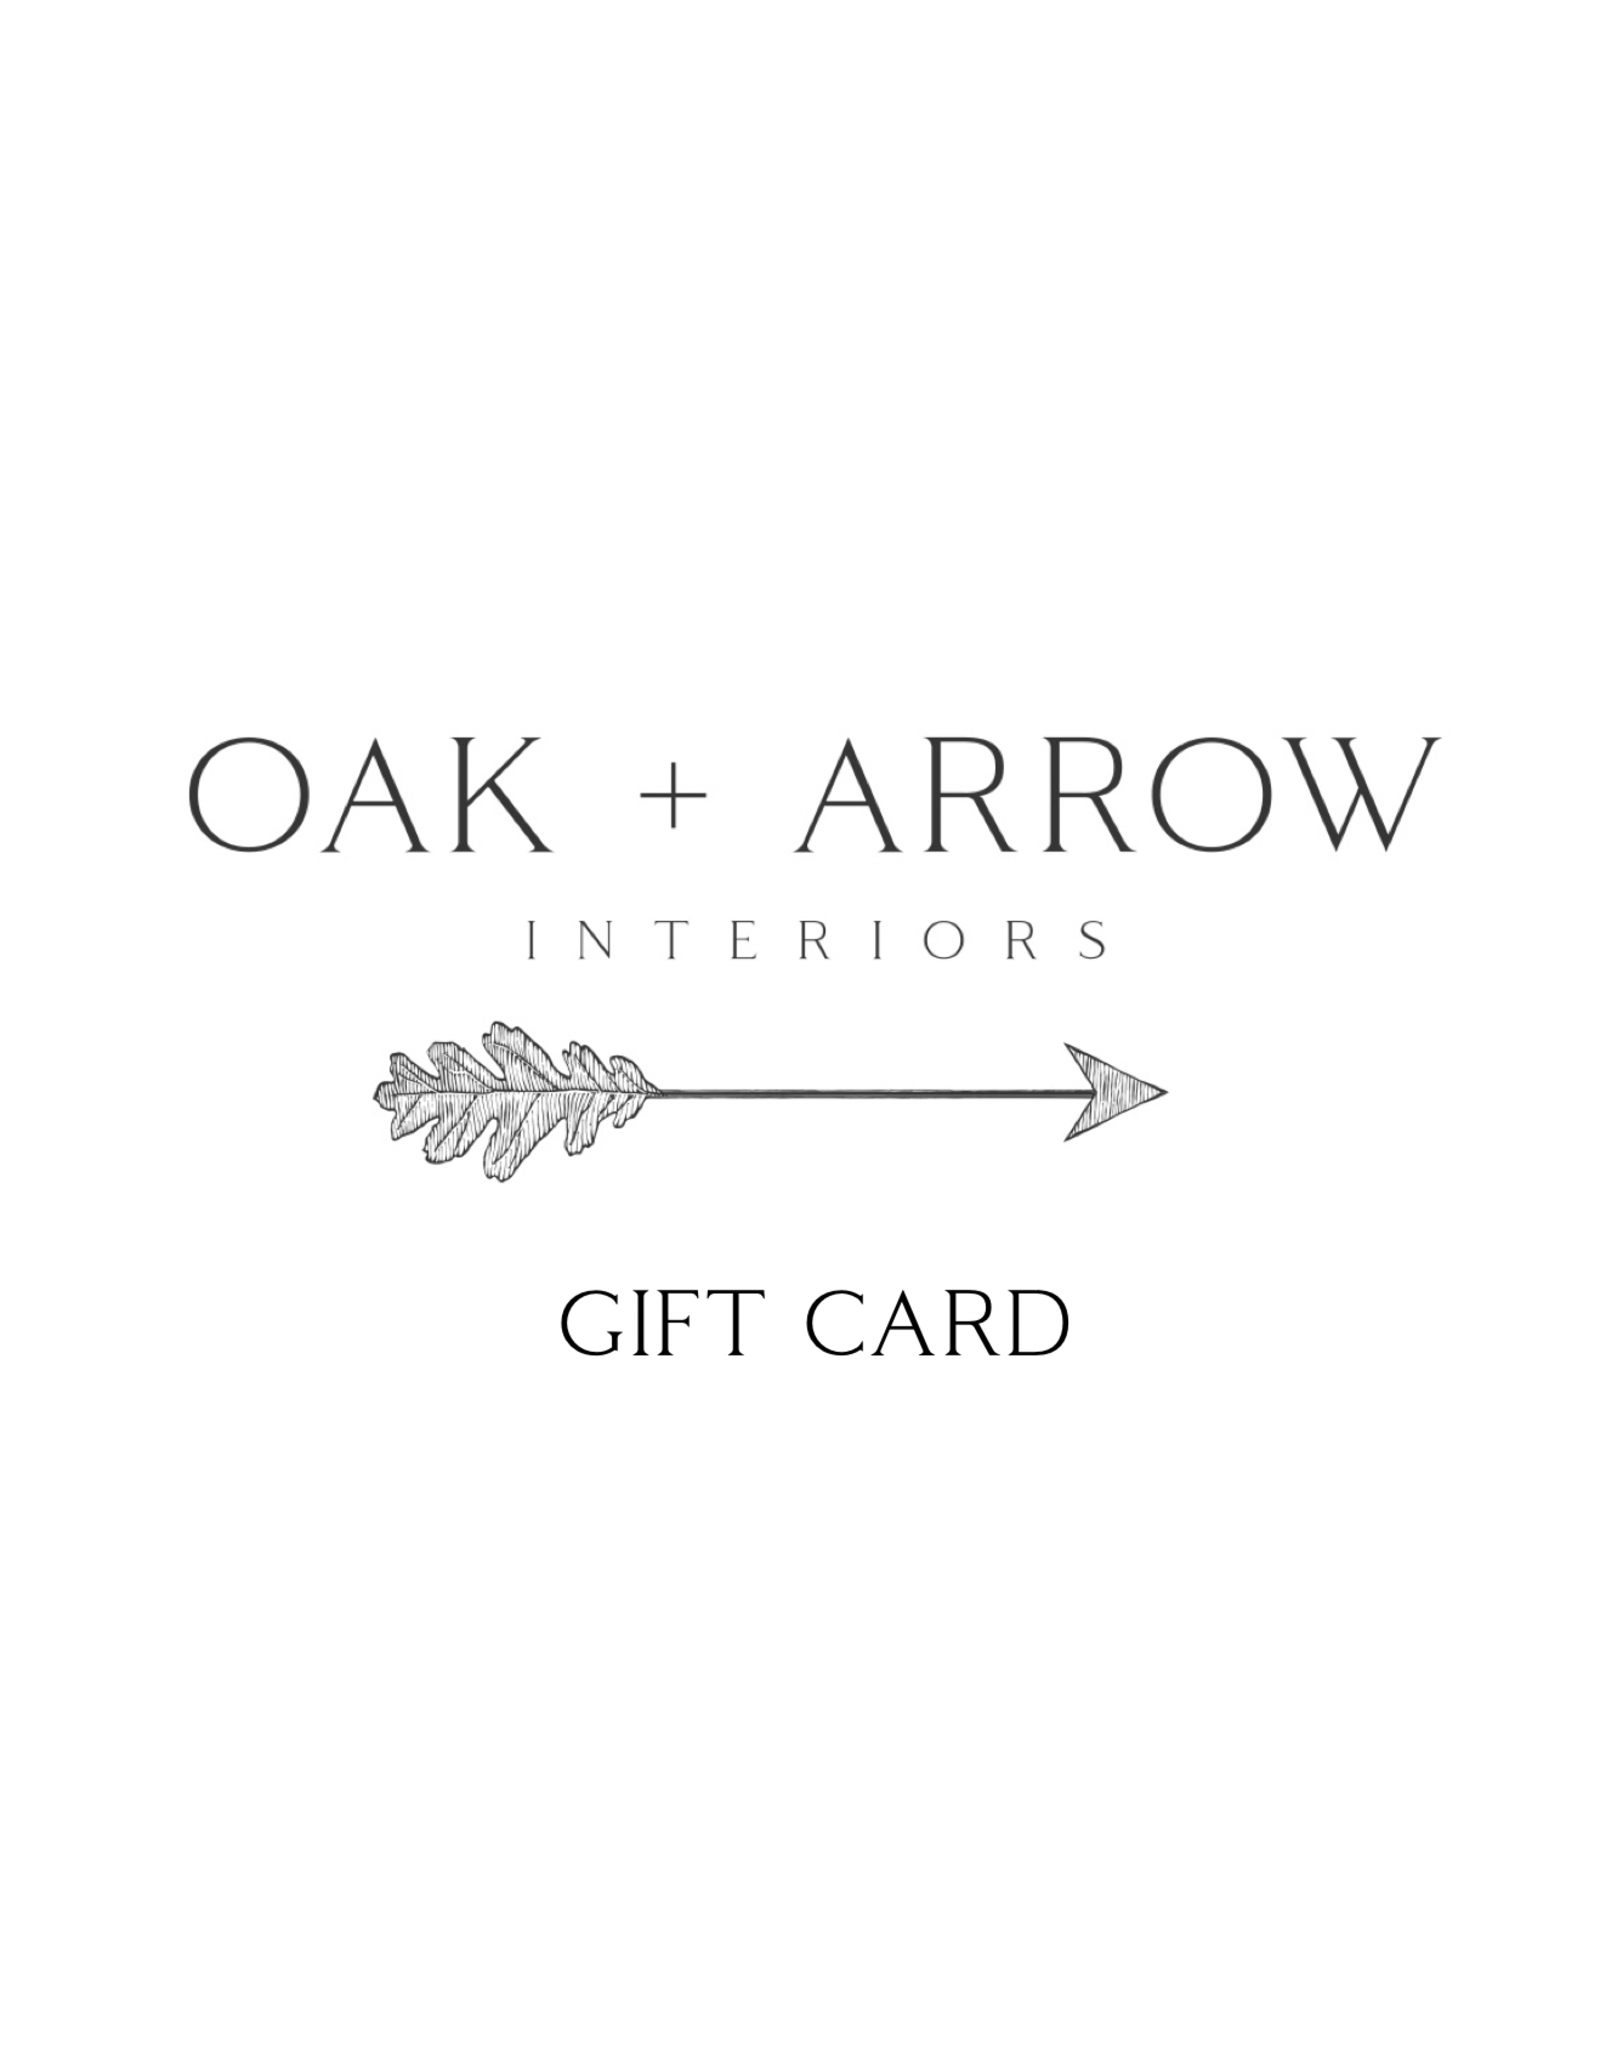 Oak + Arrow Interiors Gift Card $75